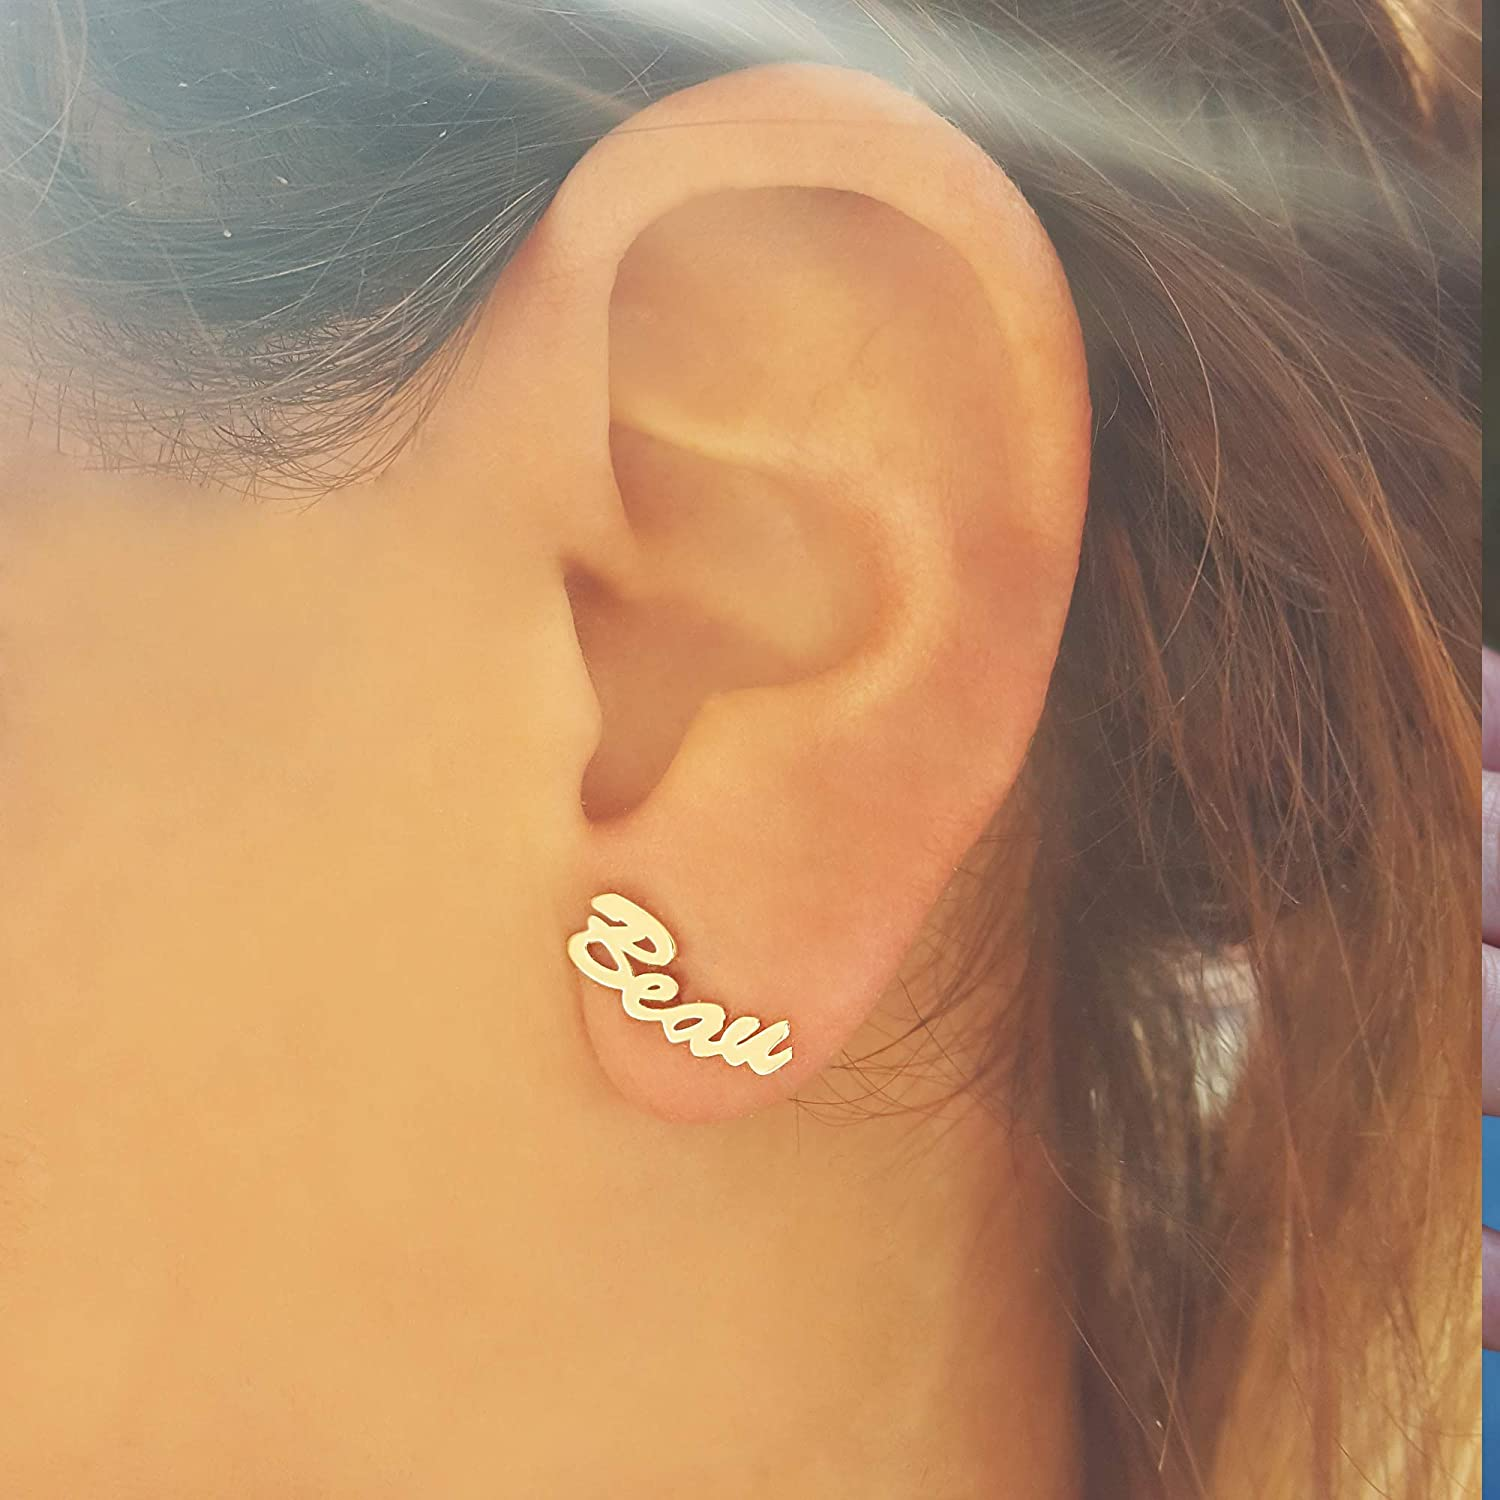 Order Your Initials Personalized Stud Earrings 10K Yellow Gold 14K or 18K Solid Gold Single Initial Earrings Rose Gold White Gold